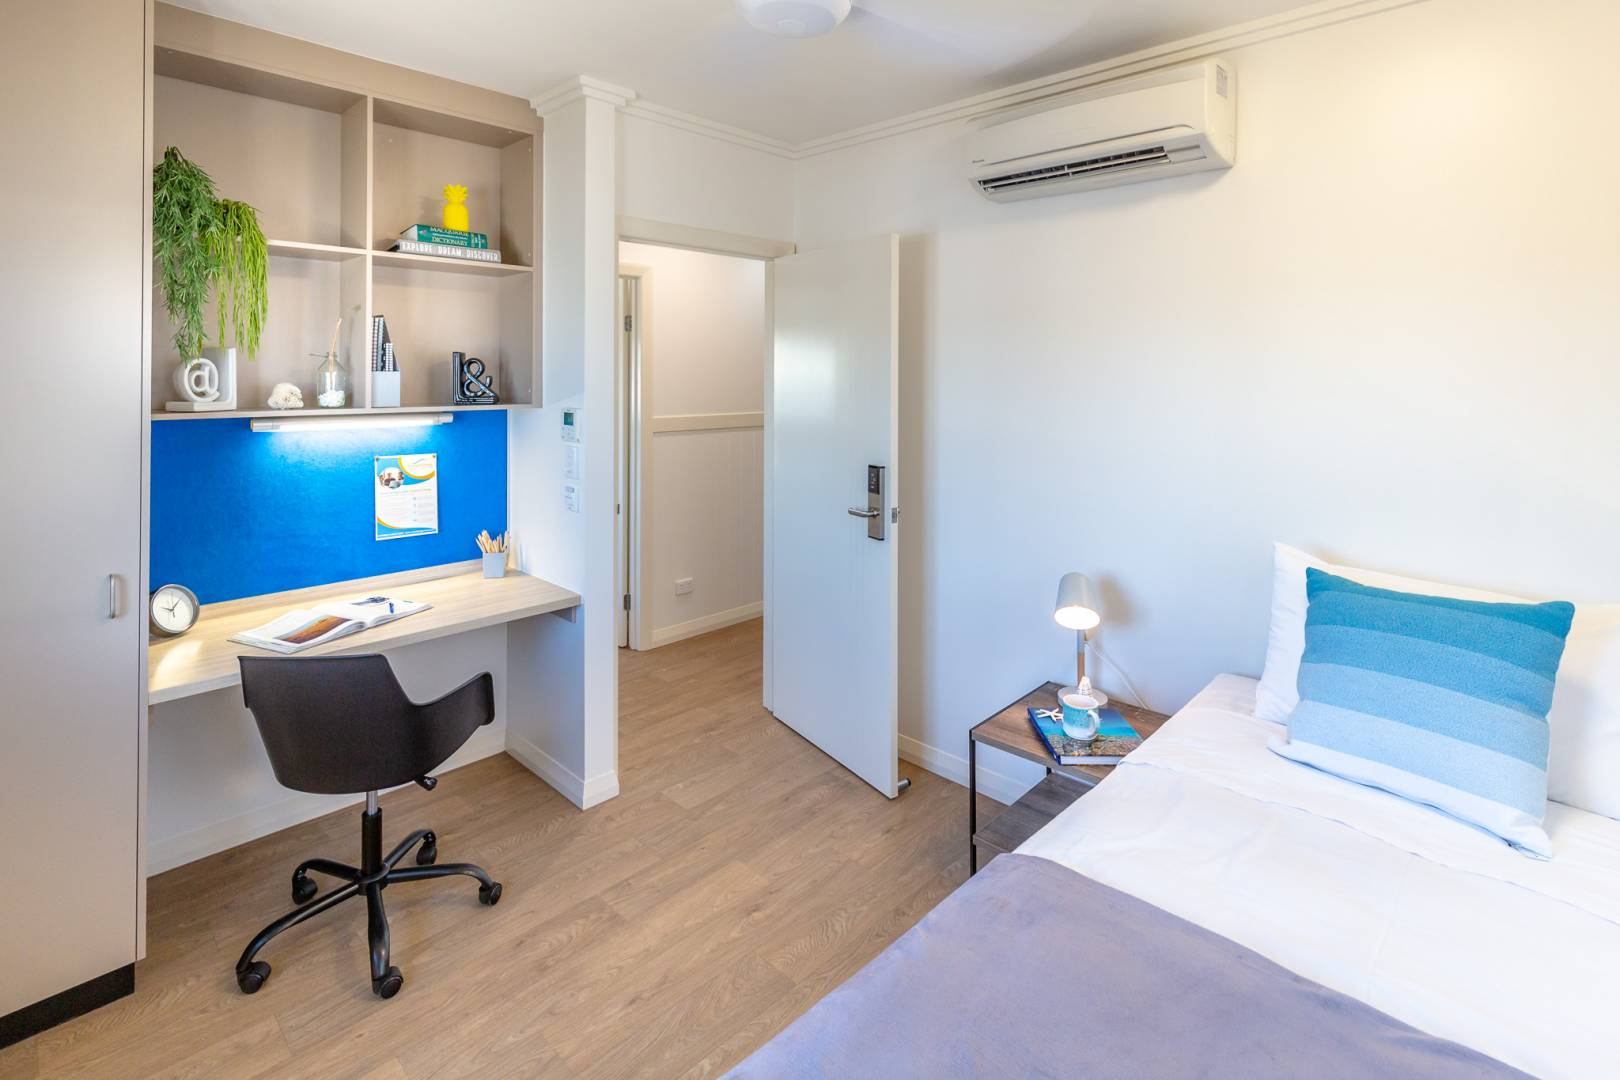 Student apartment prices in Nicosia on the rise